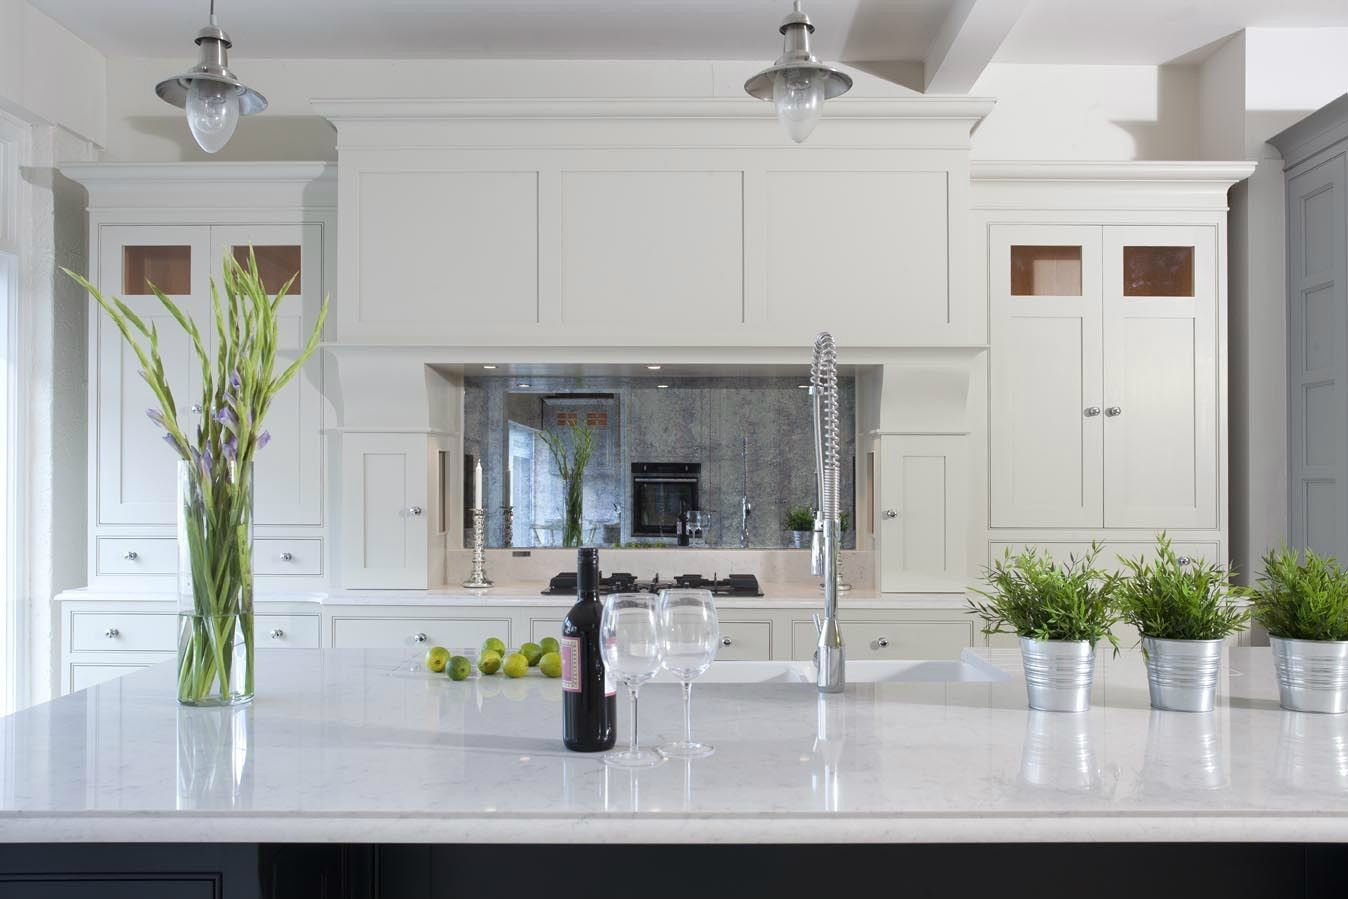 Silestone Lagoon Countertop in 2020 | Marble countertops ... on Modern Kitchen Countertop Decor  id=44748